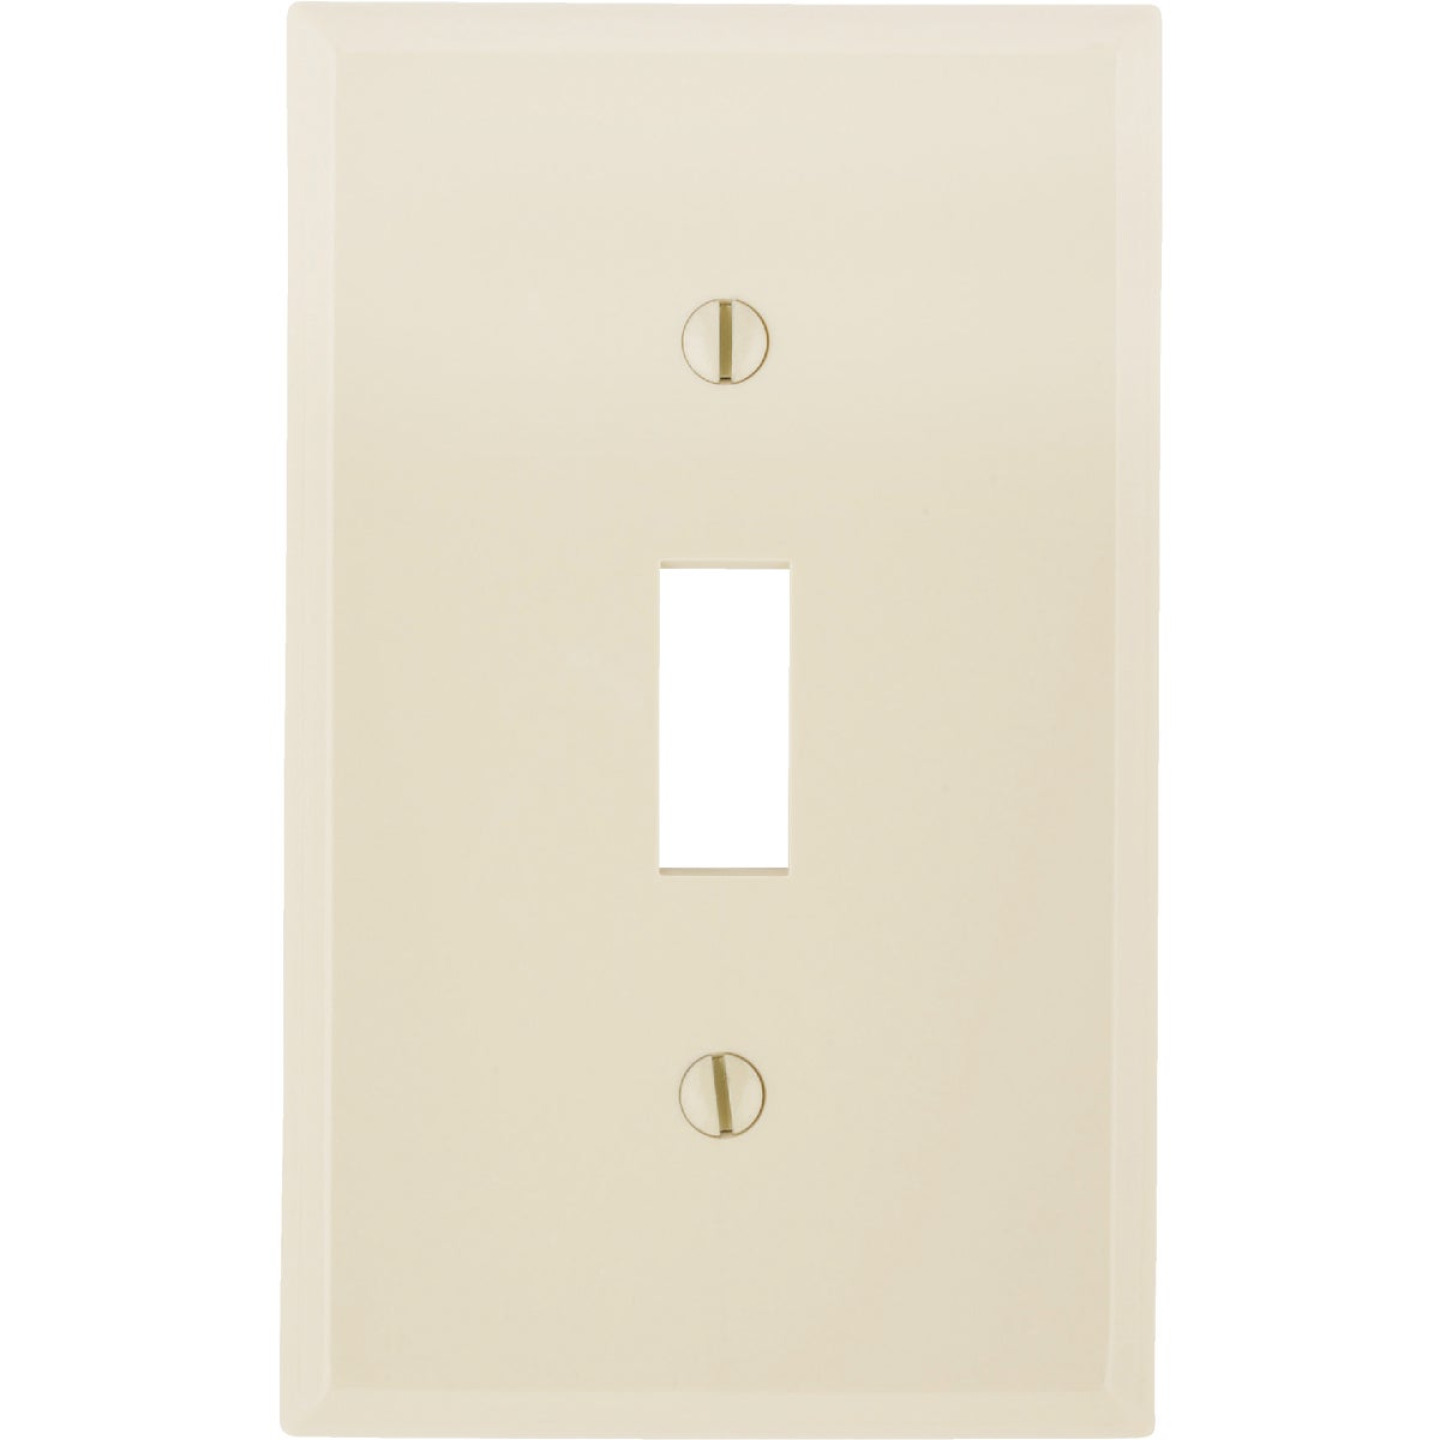 Leviton 1-Gang Thermoplastic Nylon Toggle Switch Wall Plate, Ivory Image 1